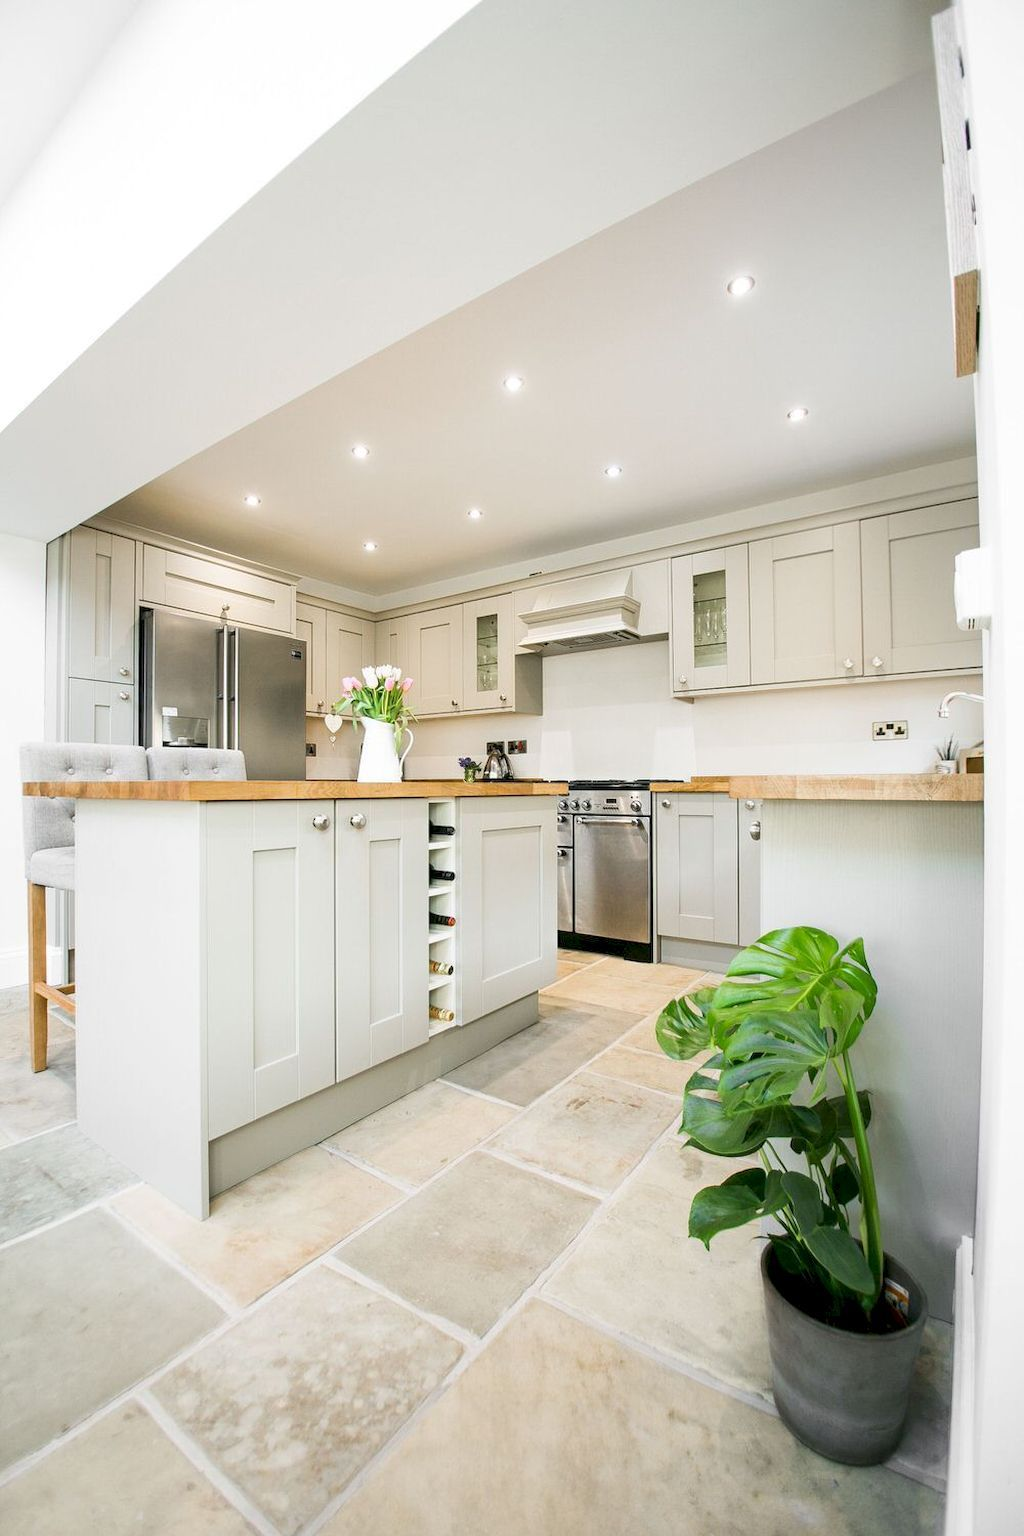 Small space kitchen kitchen on a budget small kitchen diner small spaces